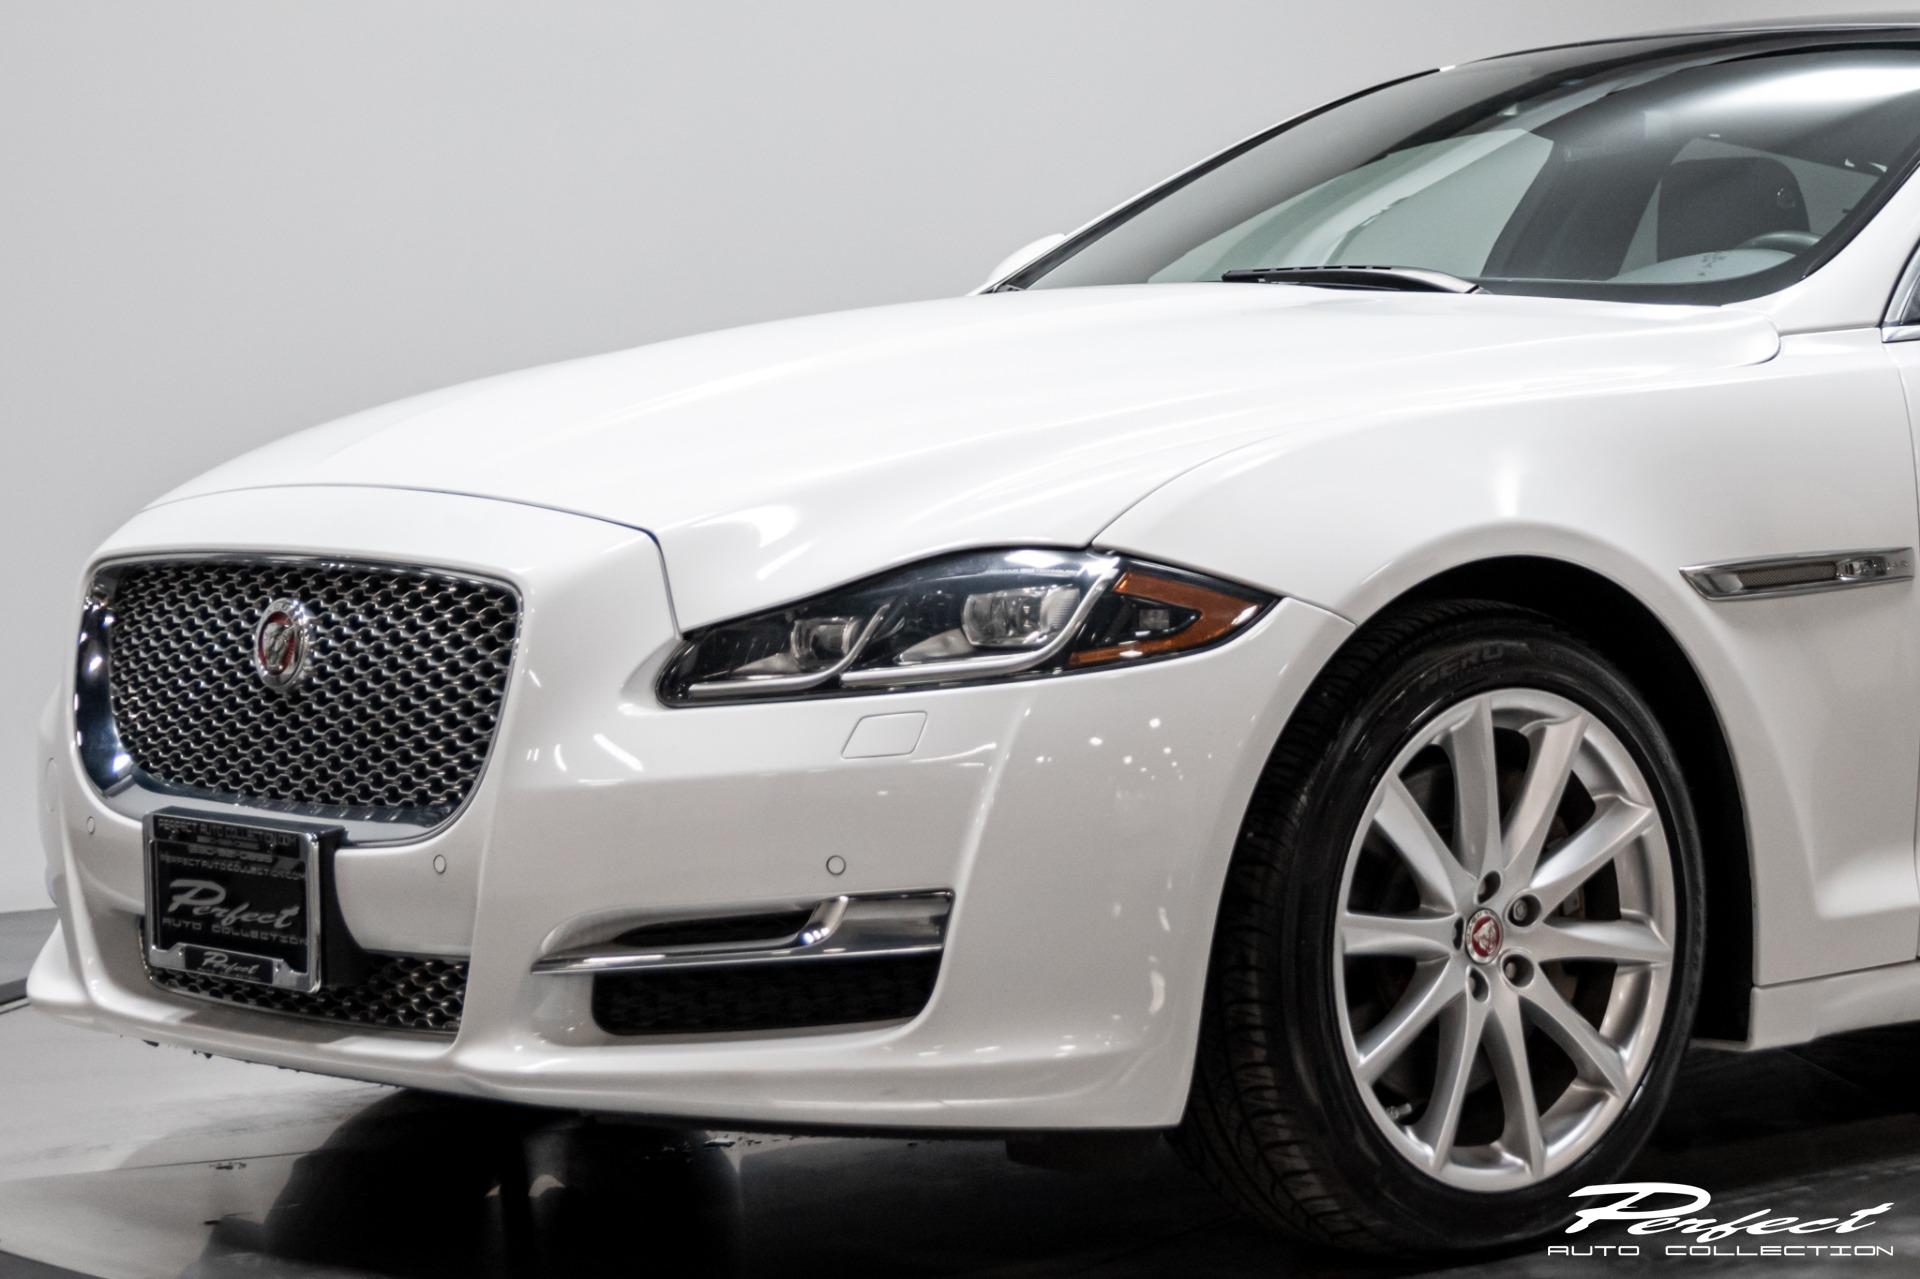 Used 2016 Jaguar XJL Portfolio for sale $36,993 at Perfect Auto Collection in Akron OH 44310 4